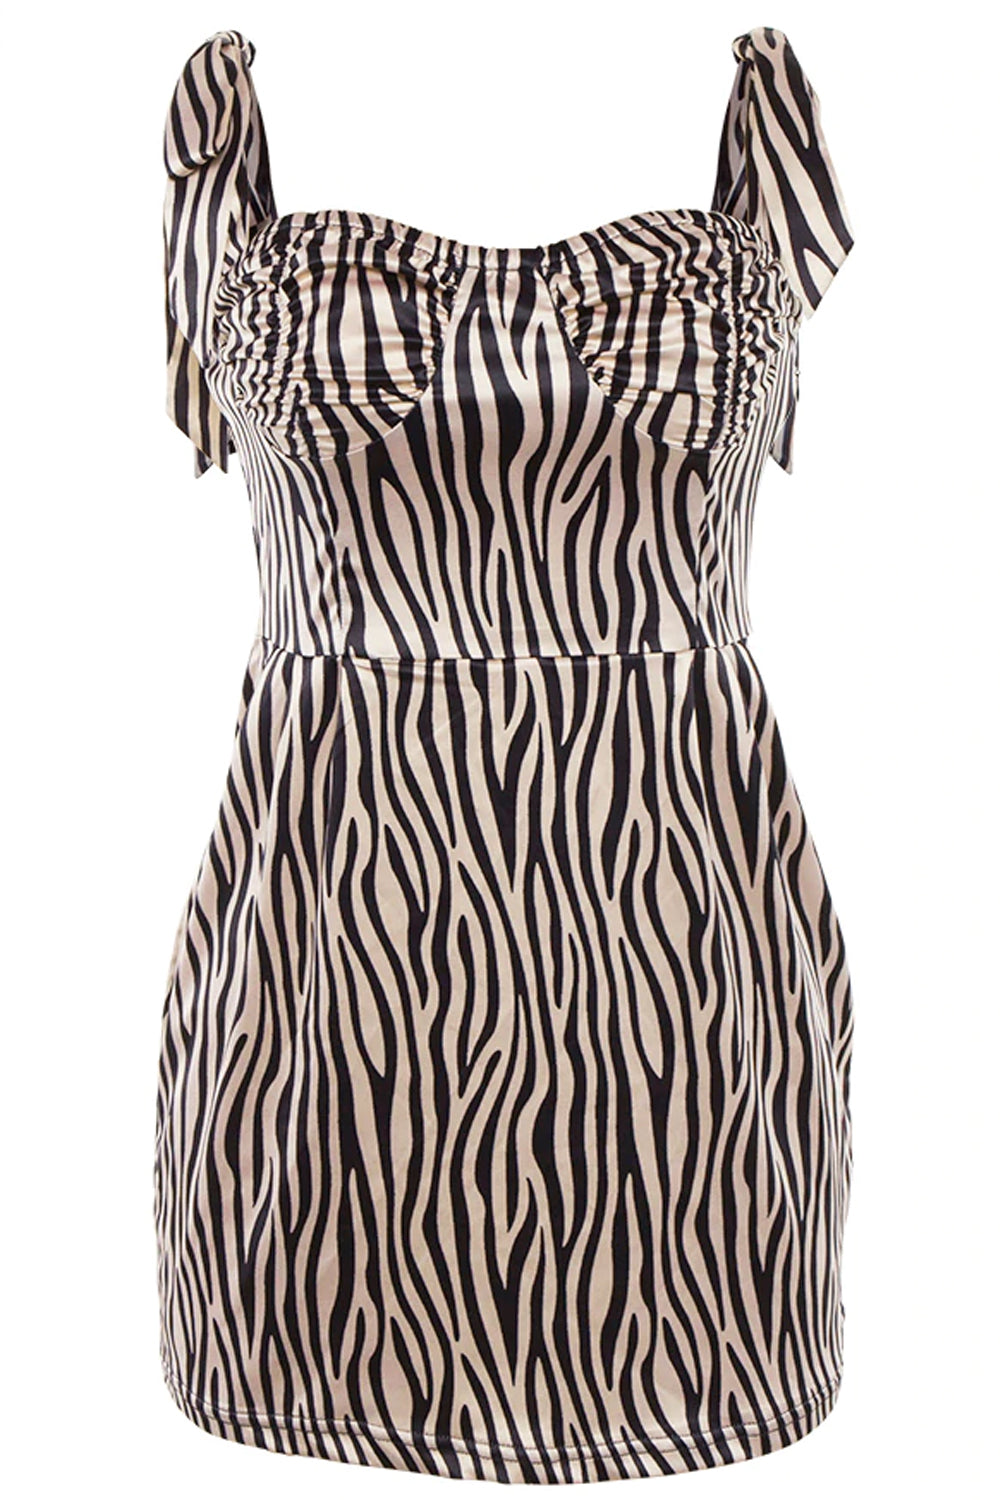 Zebra Print A-Line Mini Dress - Dress - Dakota Collective - Dakota Collective